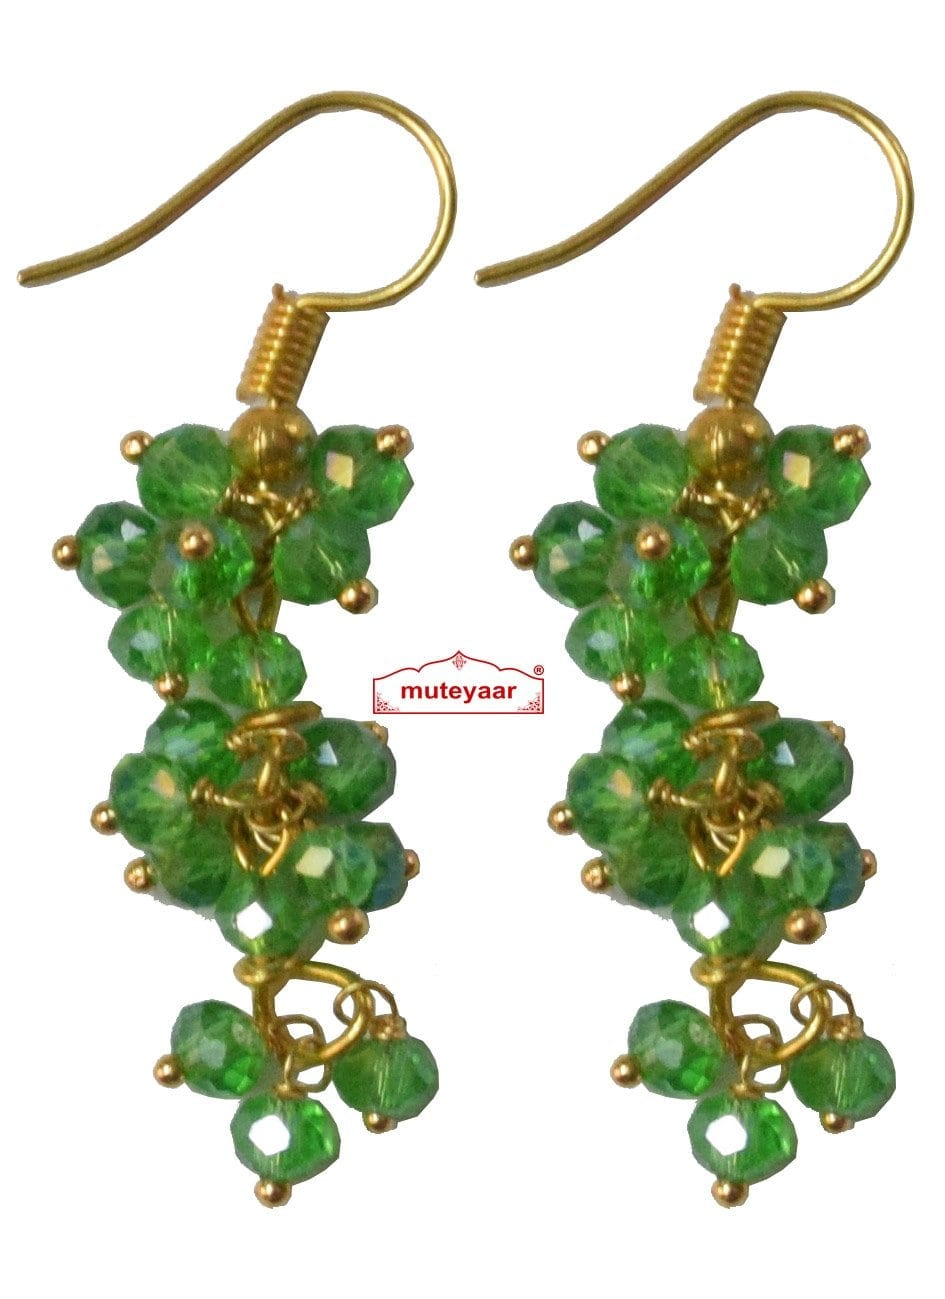 3 Step Crystal Earrings Jhumki - All colours available 1